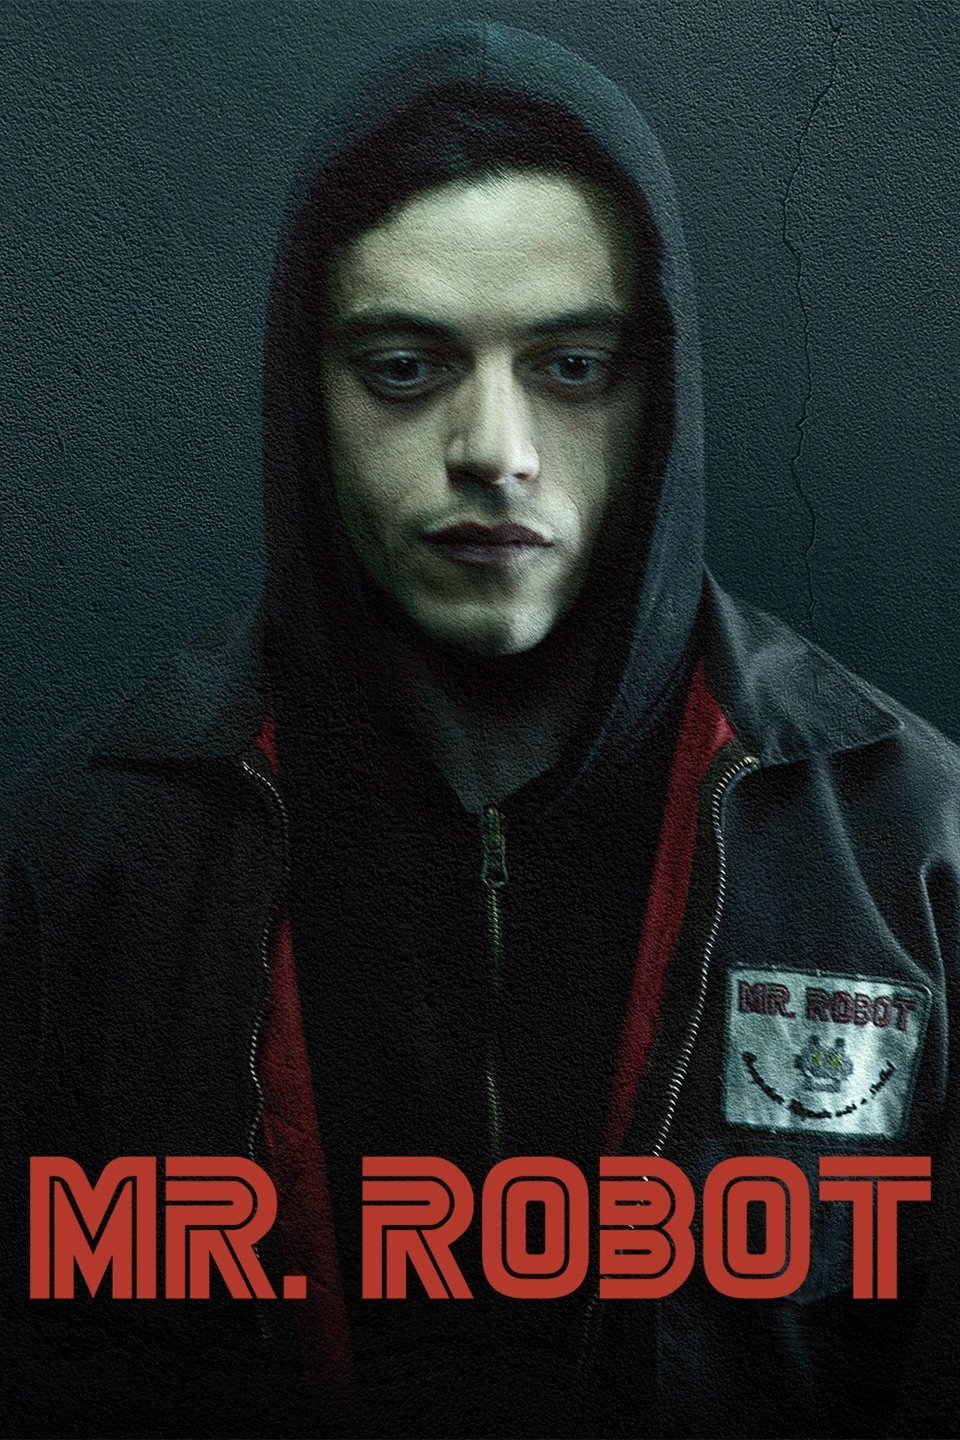 Mr Robot Season 2 Complete 720p WEB-DL HEVC Free Tv Shows Download